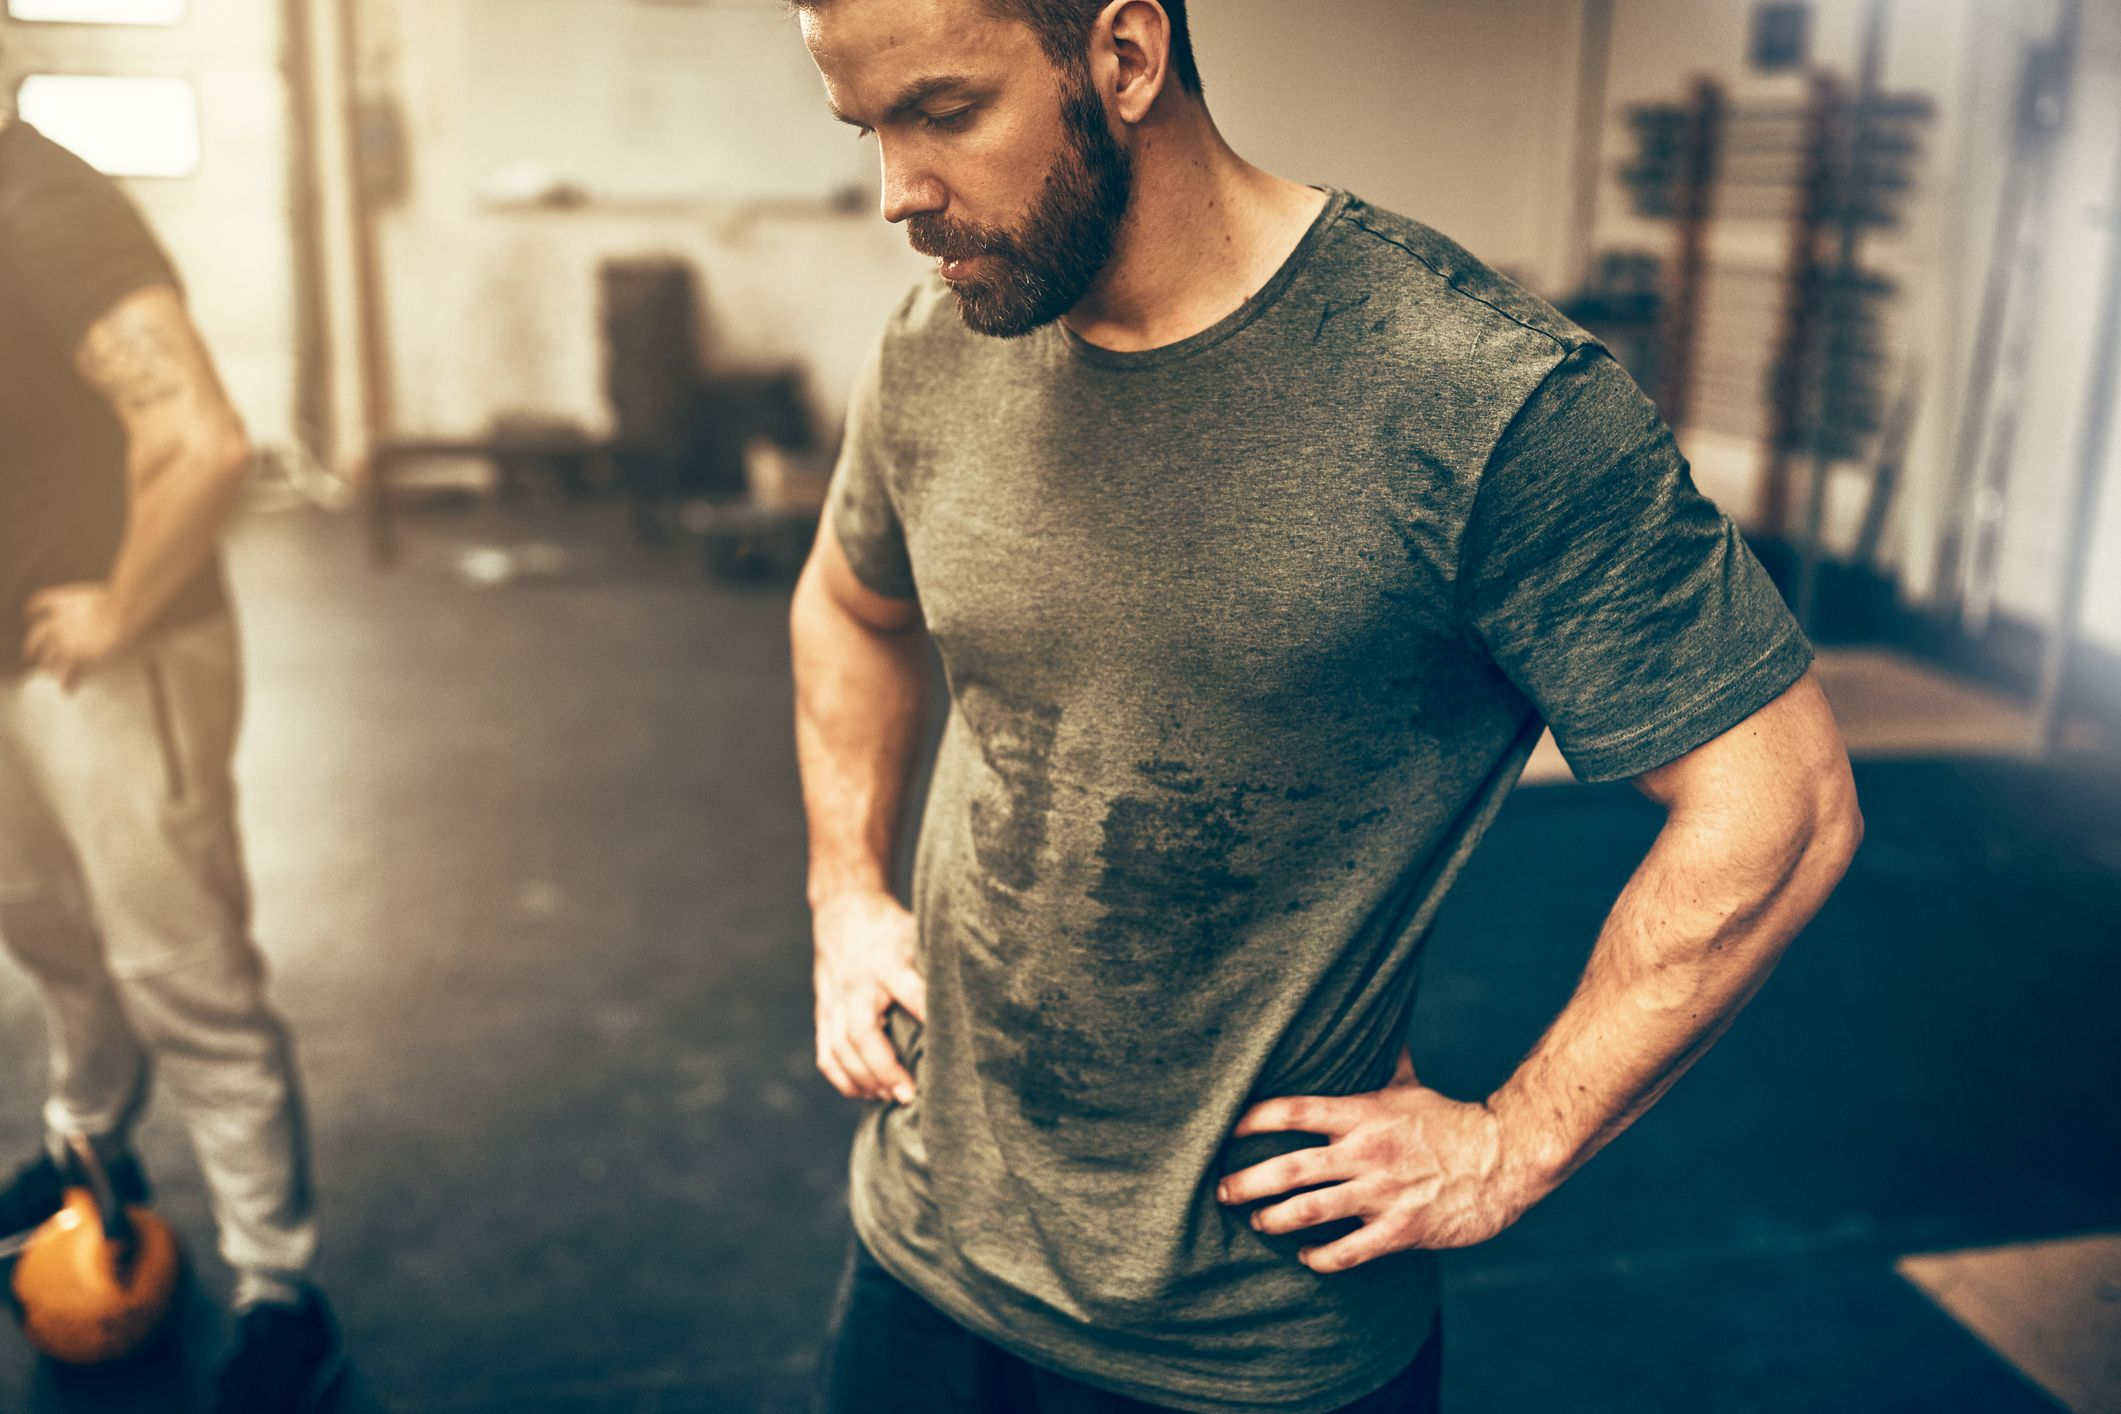 Excessive Sweating: Why You Sweat Lots During Workouts